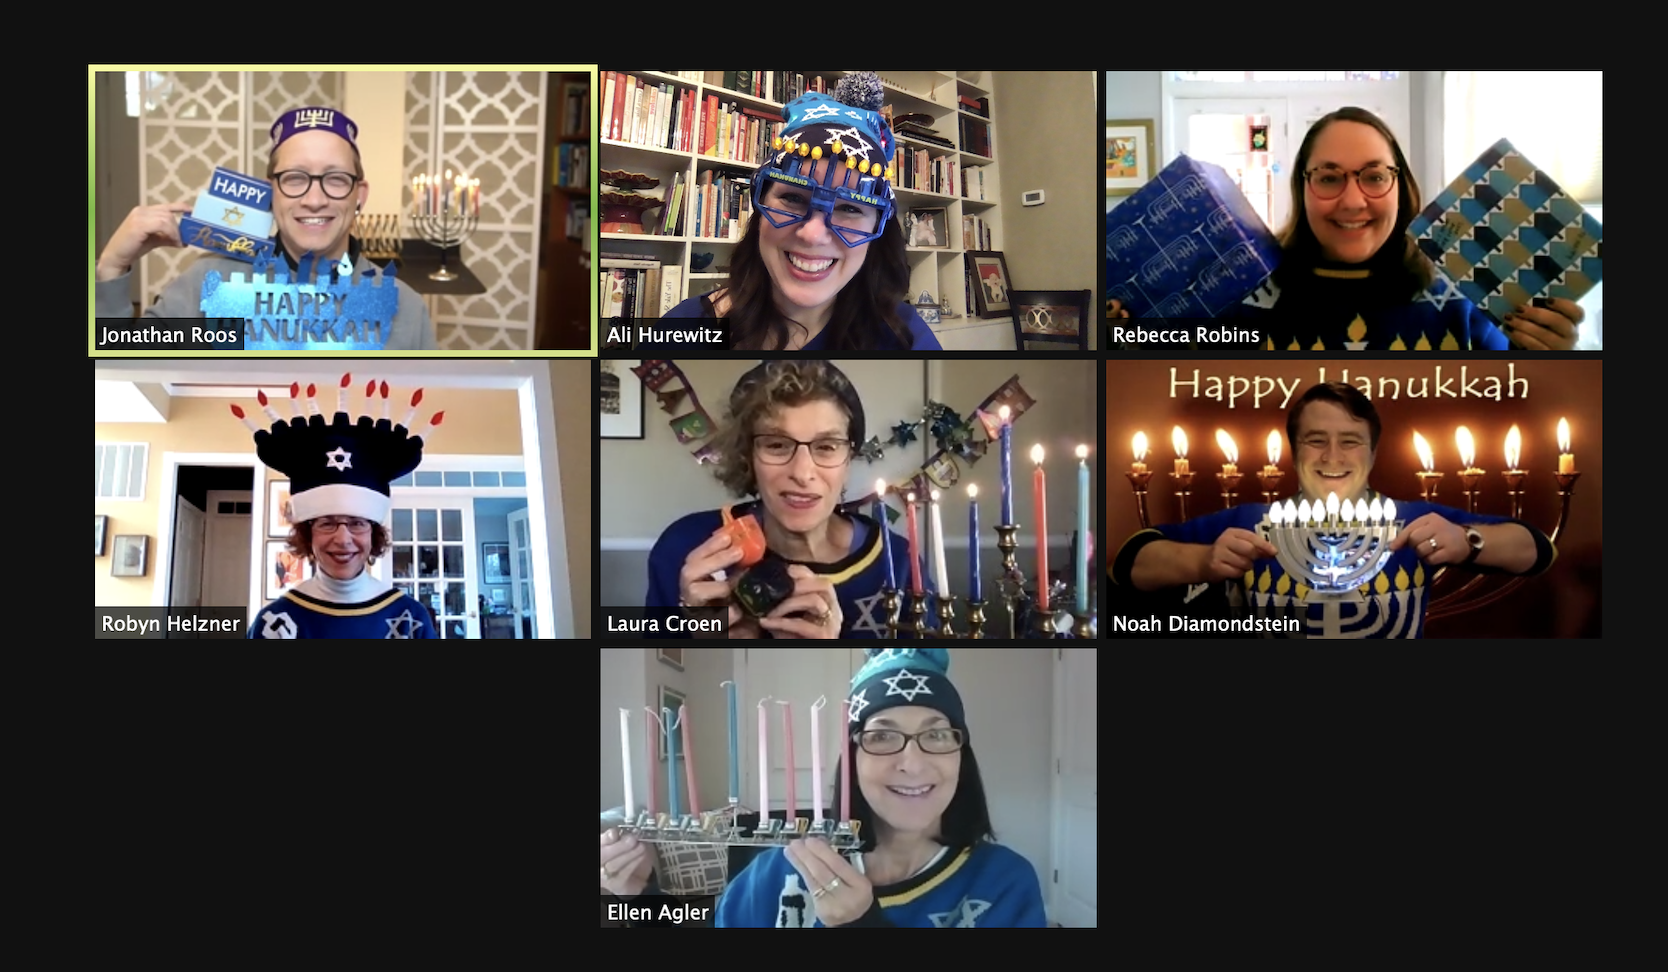 Happy Chanukah from our Ritual and Director Staff!